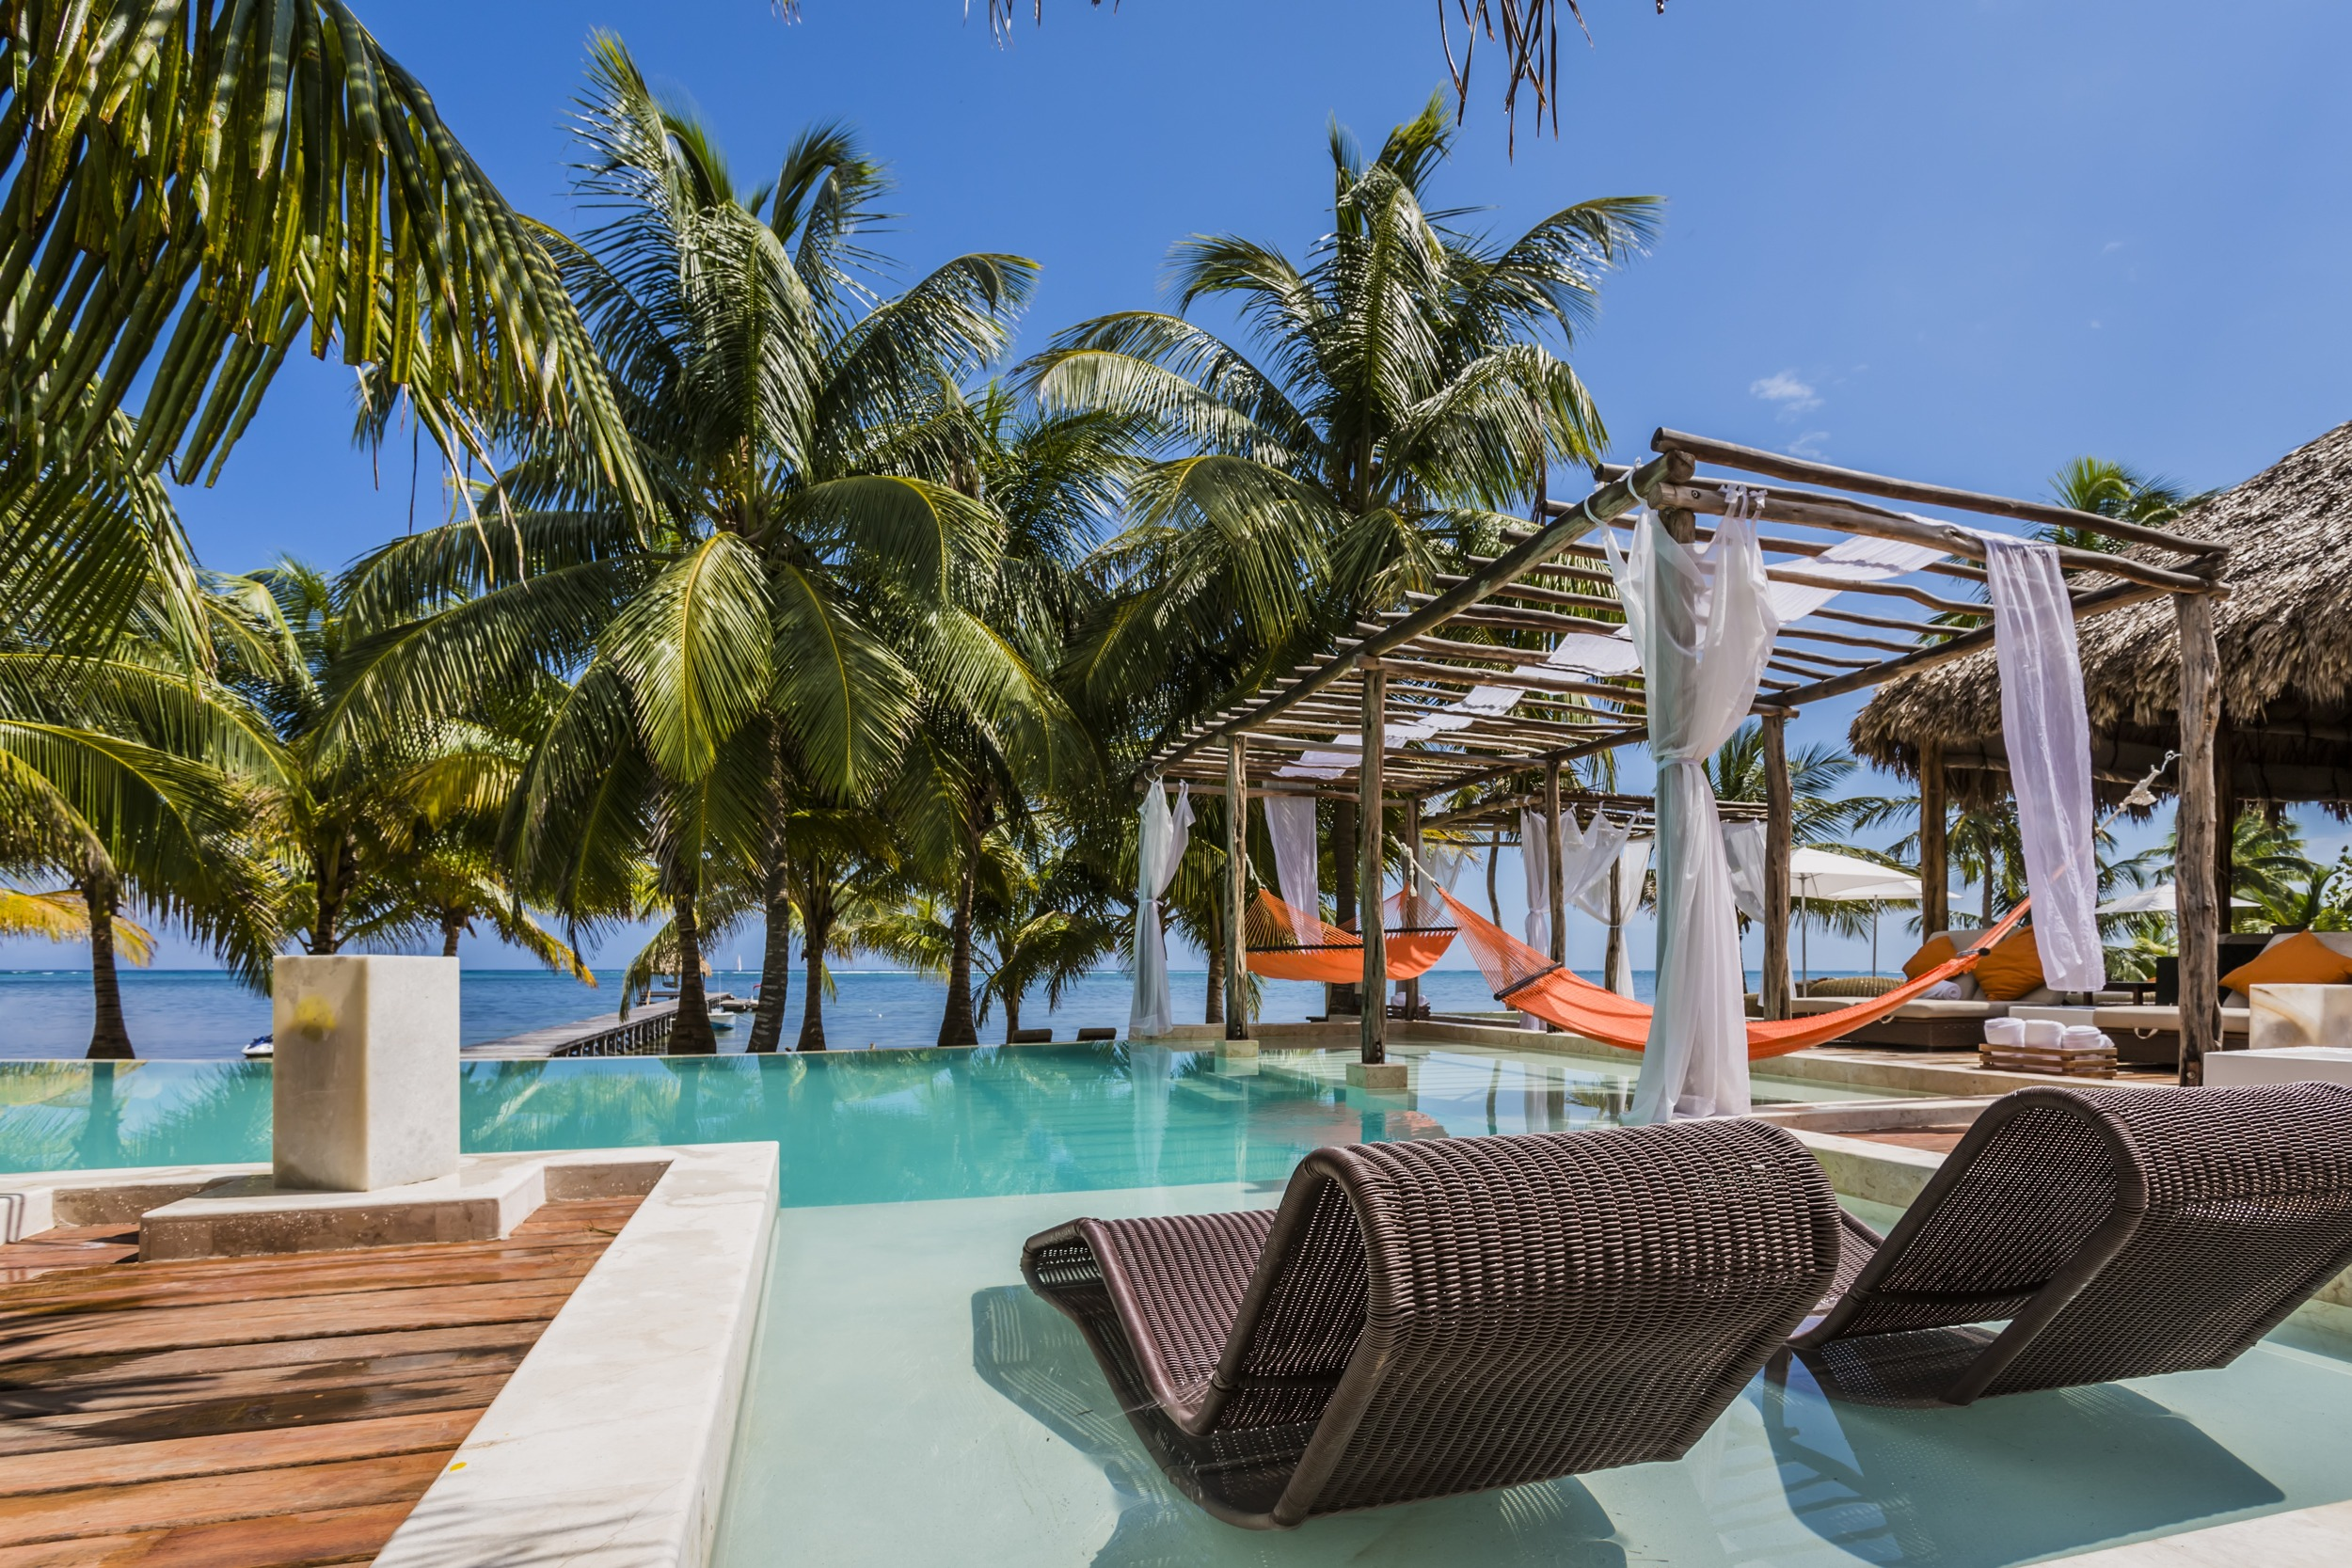 Luxurious El Secreto Belize